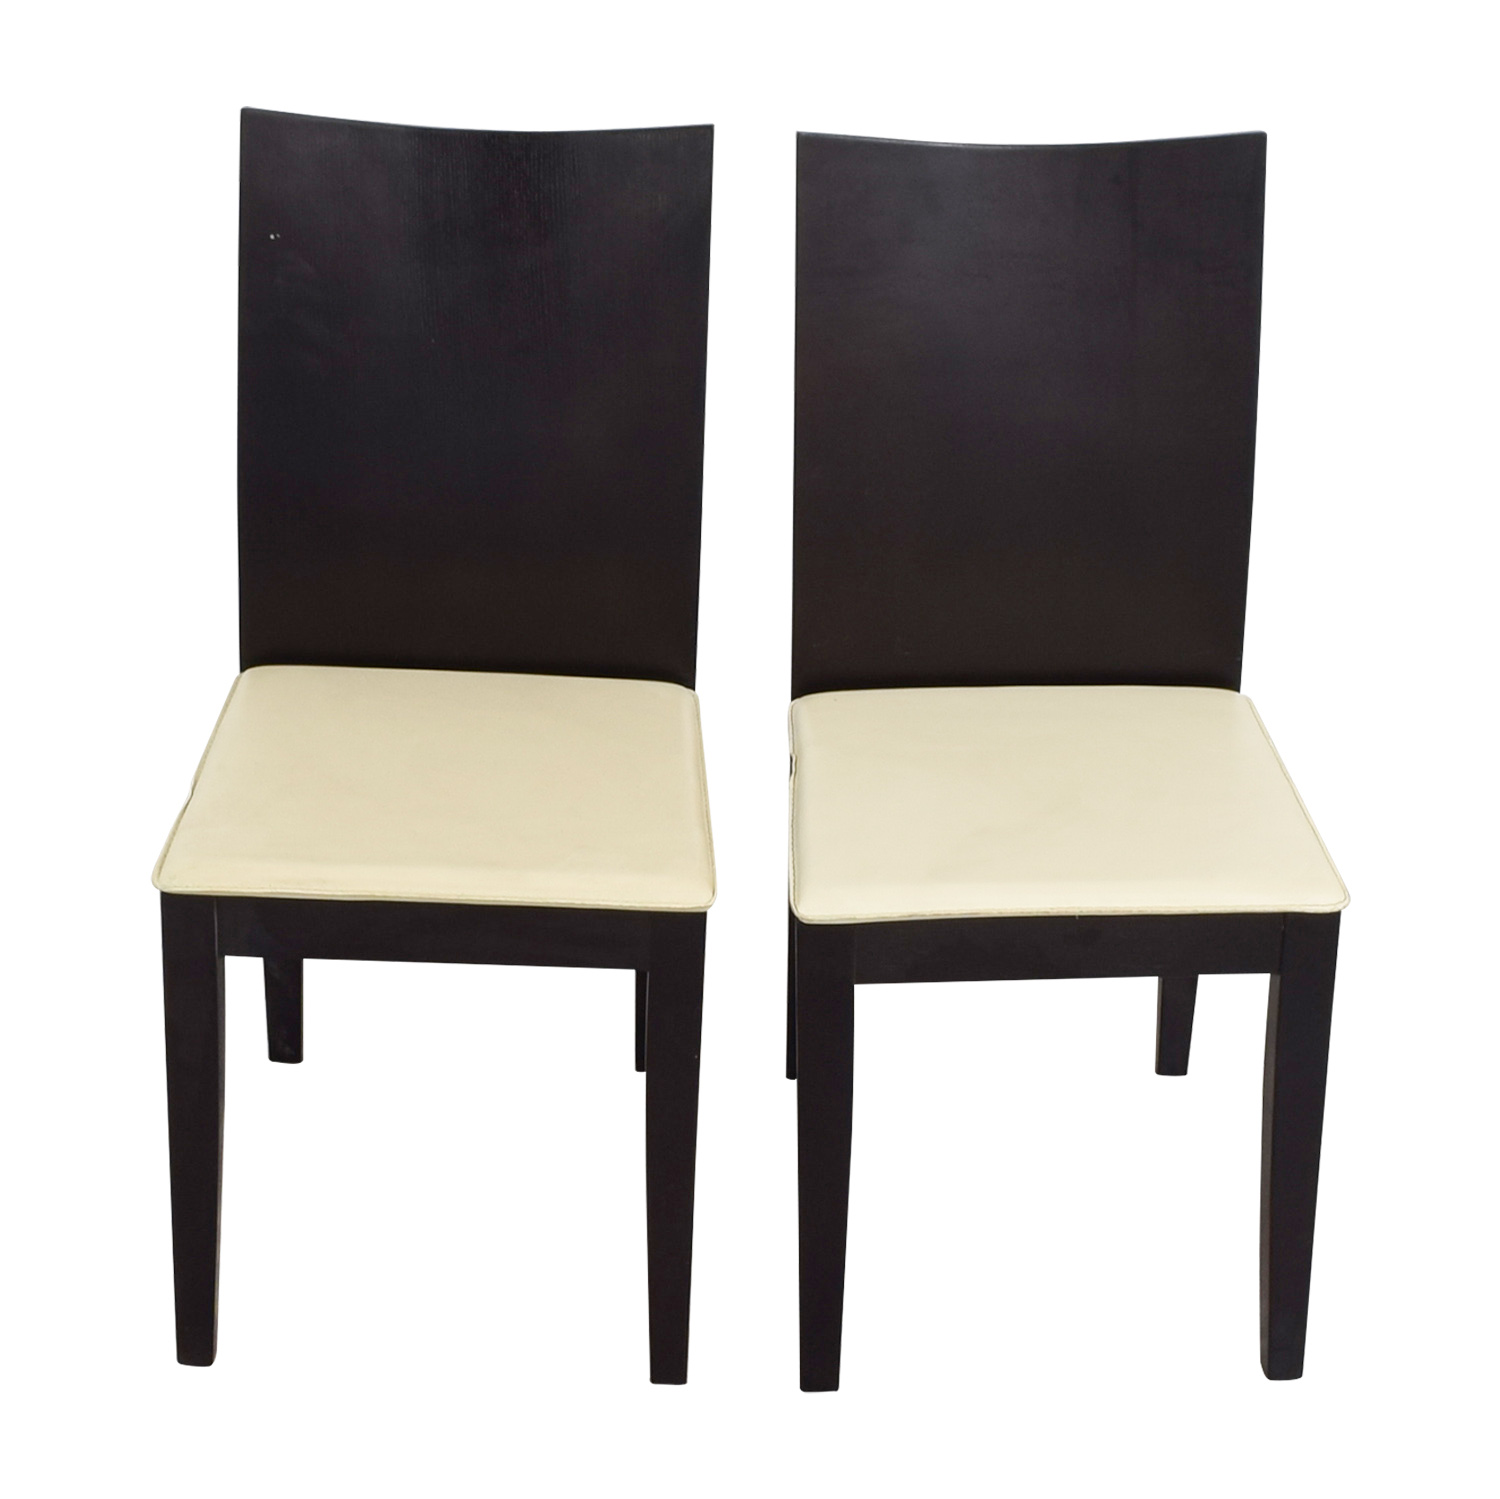 Dining Chairs in Wenge Frame for sale